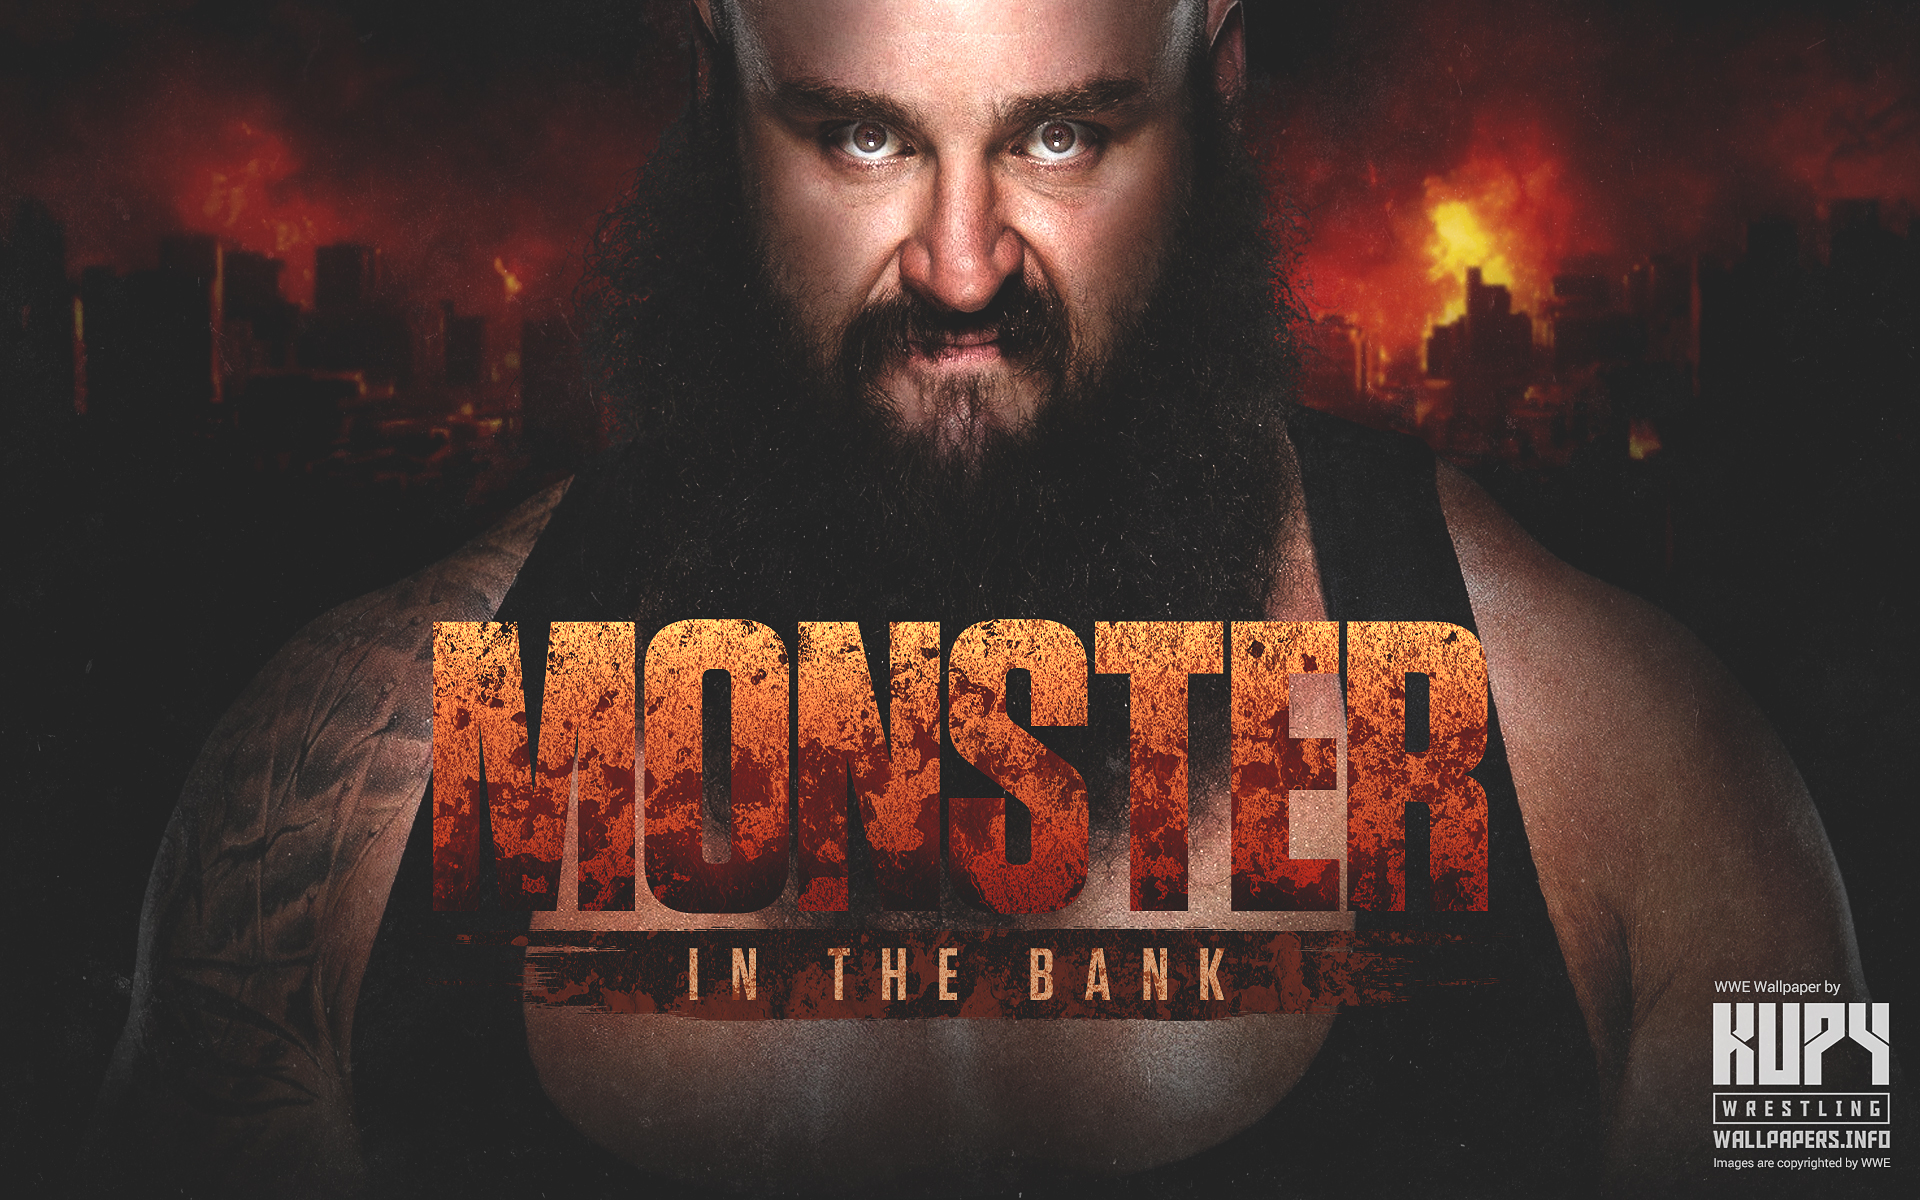 Monster In The Bank Braun Strowman wallpaper   Kupy Wrestling 1920x1200